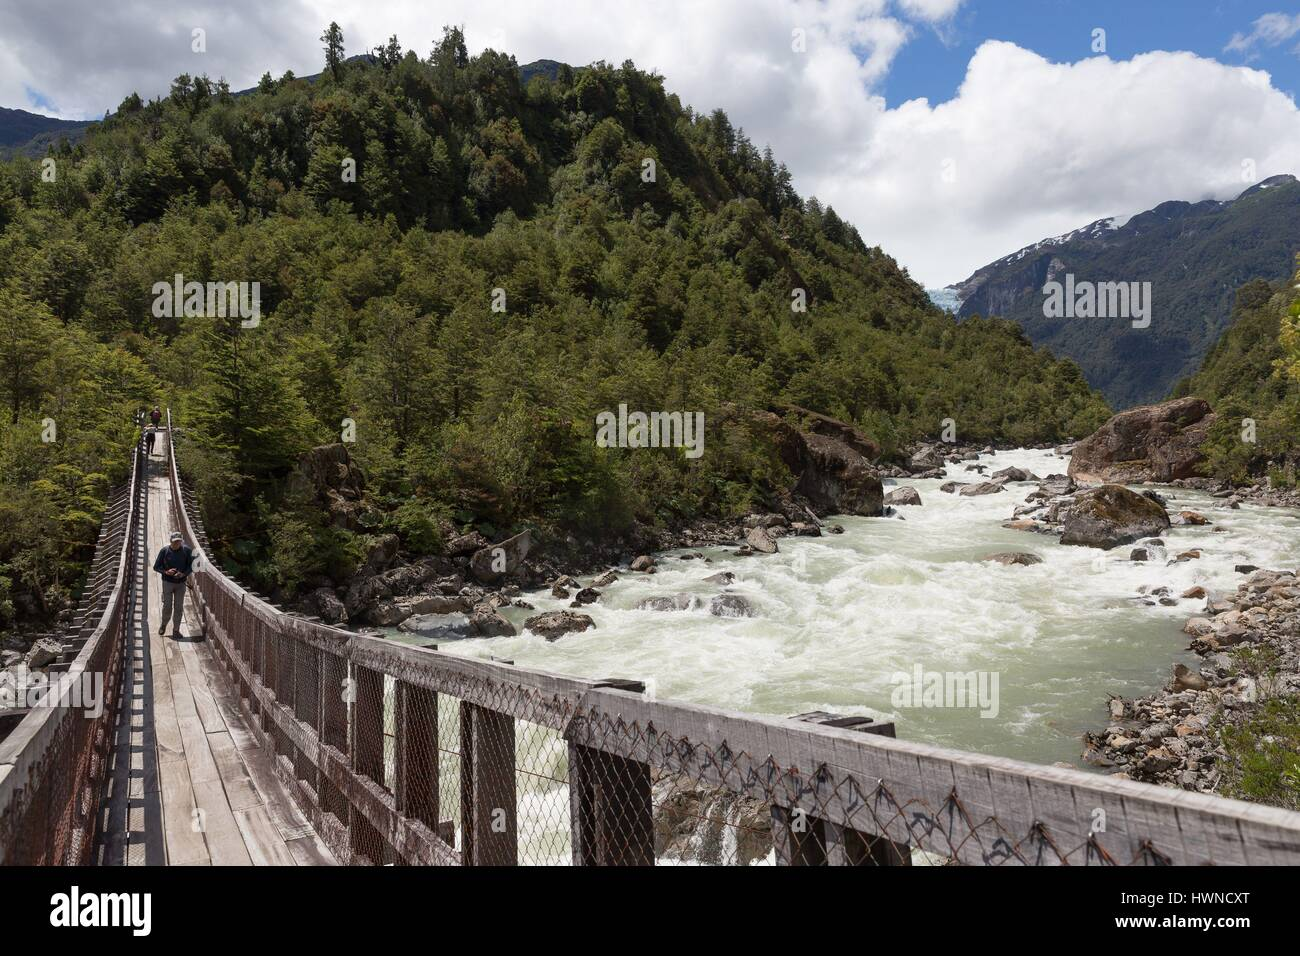 Chile, Patagonia, Aysen region, Queulat National Park, rio Ventisquero - Stock Image